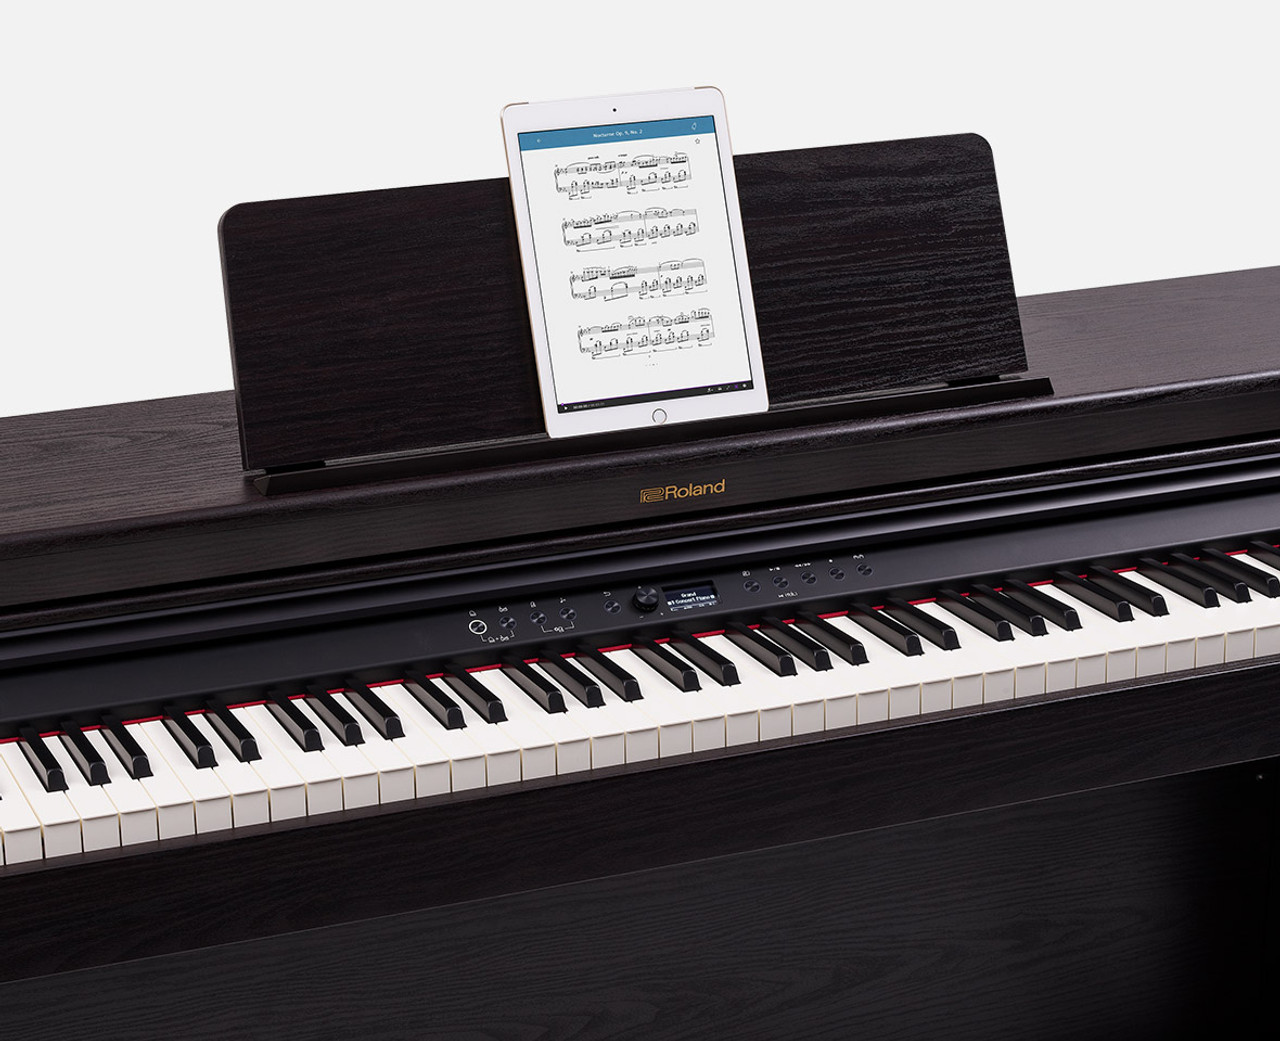 Fast-track learning with apps and Bluetooth. Great digital pianos include features that keep the whole family interested, so everyone's more likely to keep playing. Using Bluetooth audio, you can connect to your tablet or smartphone, stream music through the RP701's speakers or headphones, and then play along with your favorite artists. And with Bluetooth MIDI, it's simple to explore online teaching platforms like Skoove or try Roland's Piano Every Day app, which automatically records your performance for self-assessment and challenges you to learn a new piece with the One Week Master program.